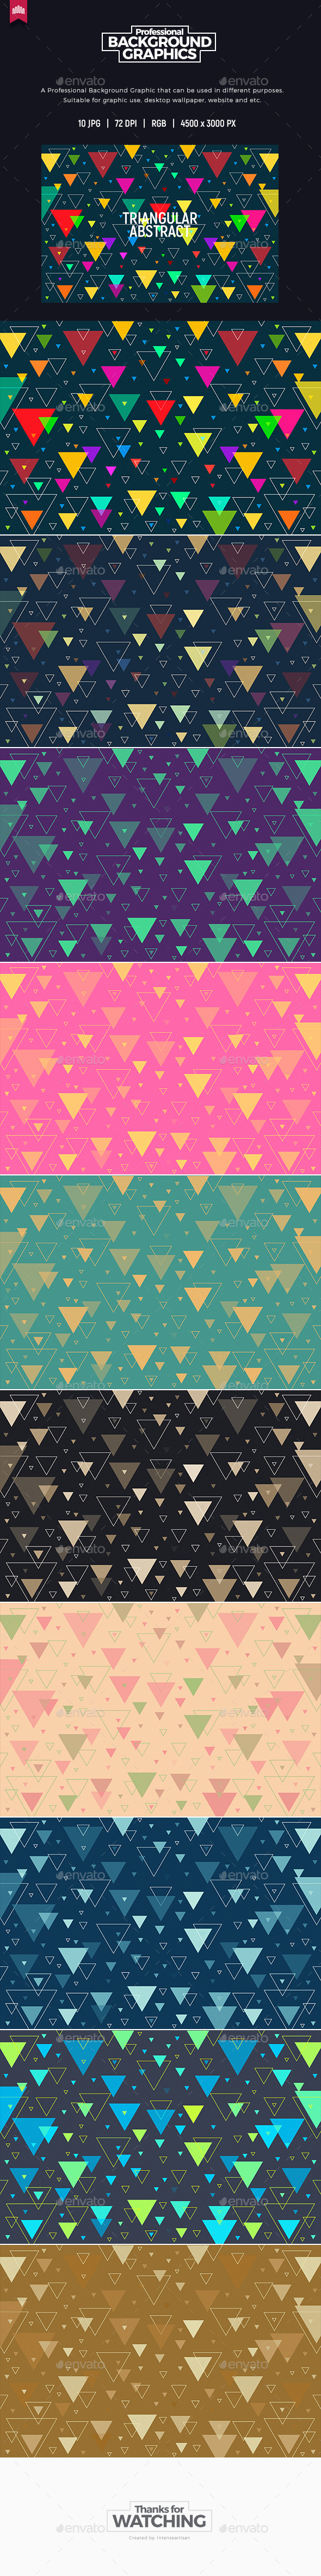 Triangular Abstract - Background - Abstract Backgrounds